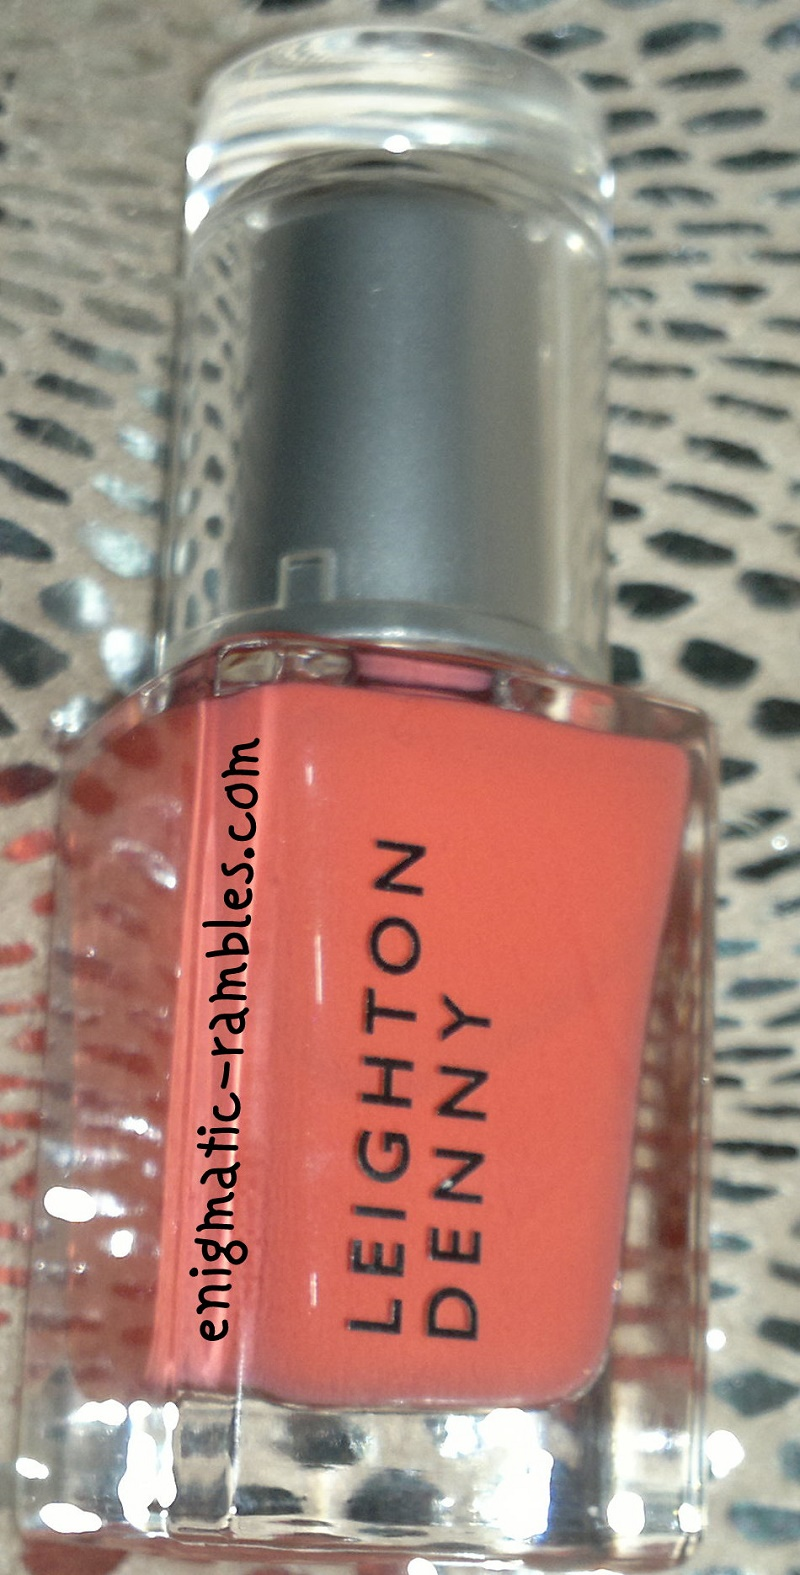 Leighton-Denny-qvc-8-Piece-Ultra-Glam-Collection-and-Bag-swatches-swatch-review-bon-voyage